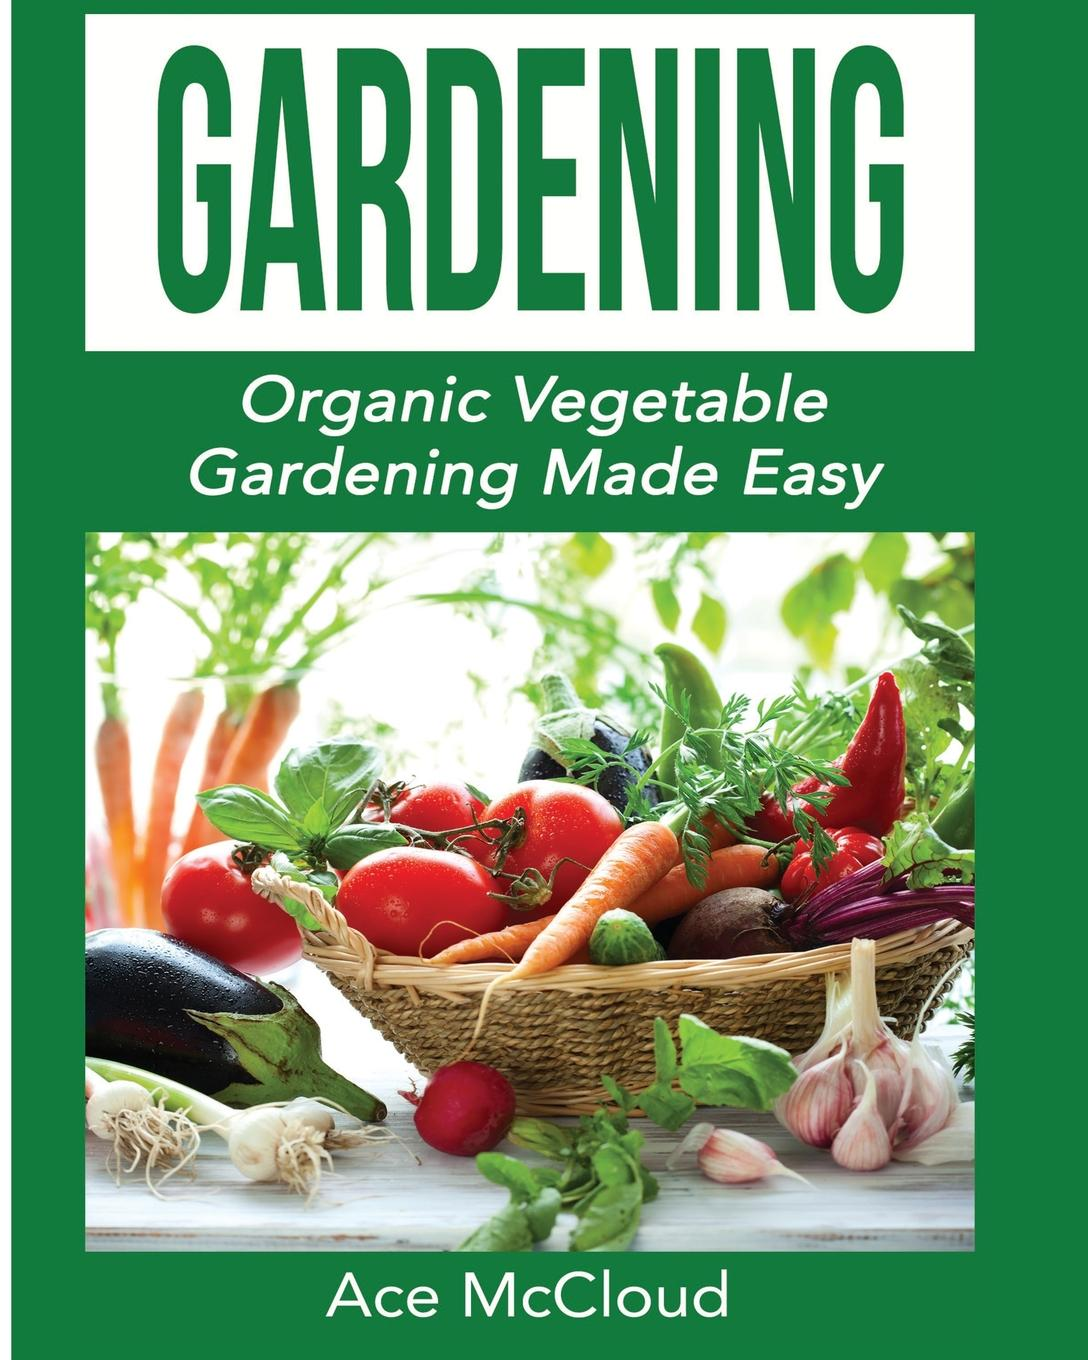 цена на Ace McCloud Gardening. Organic Vegetable Gardening Made Easy